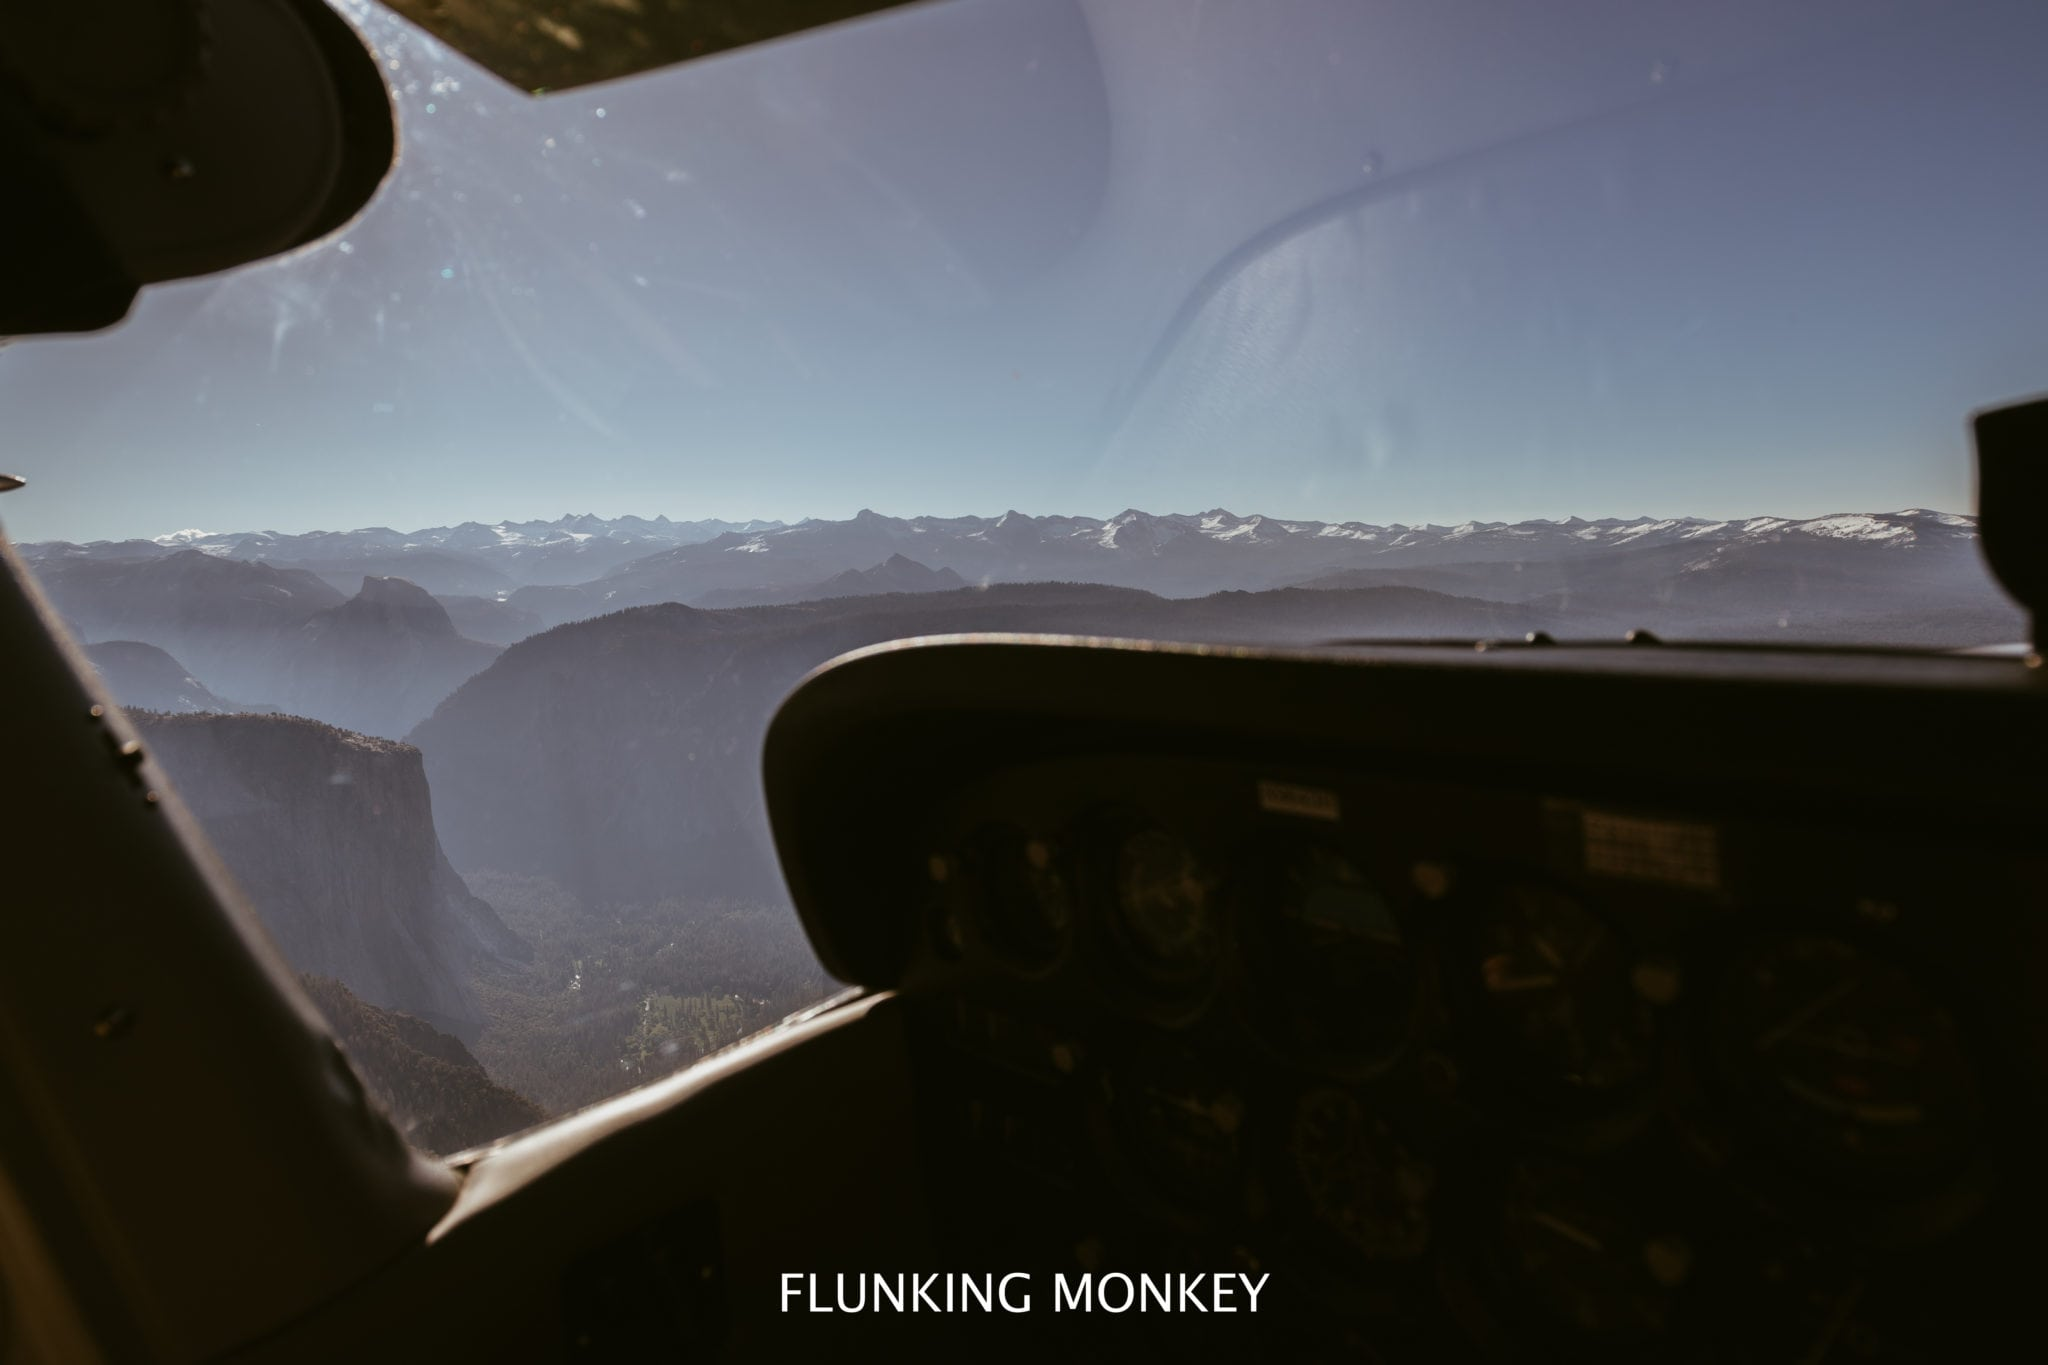 12 Ways To Have The Ultimate Northern California Road Trip - Things To Do: Yosemite Scenic Air Tour